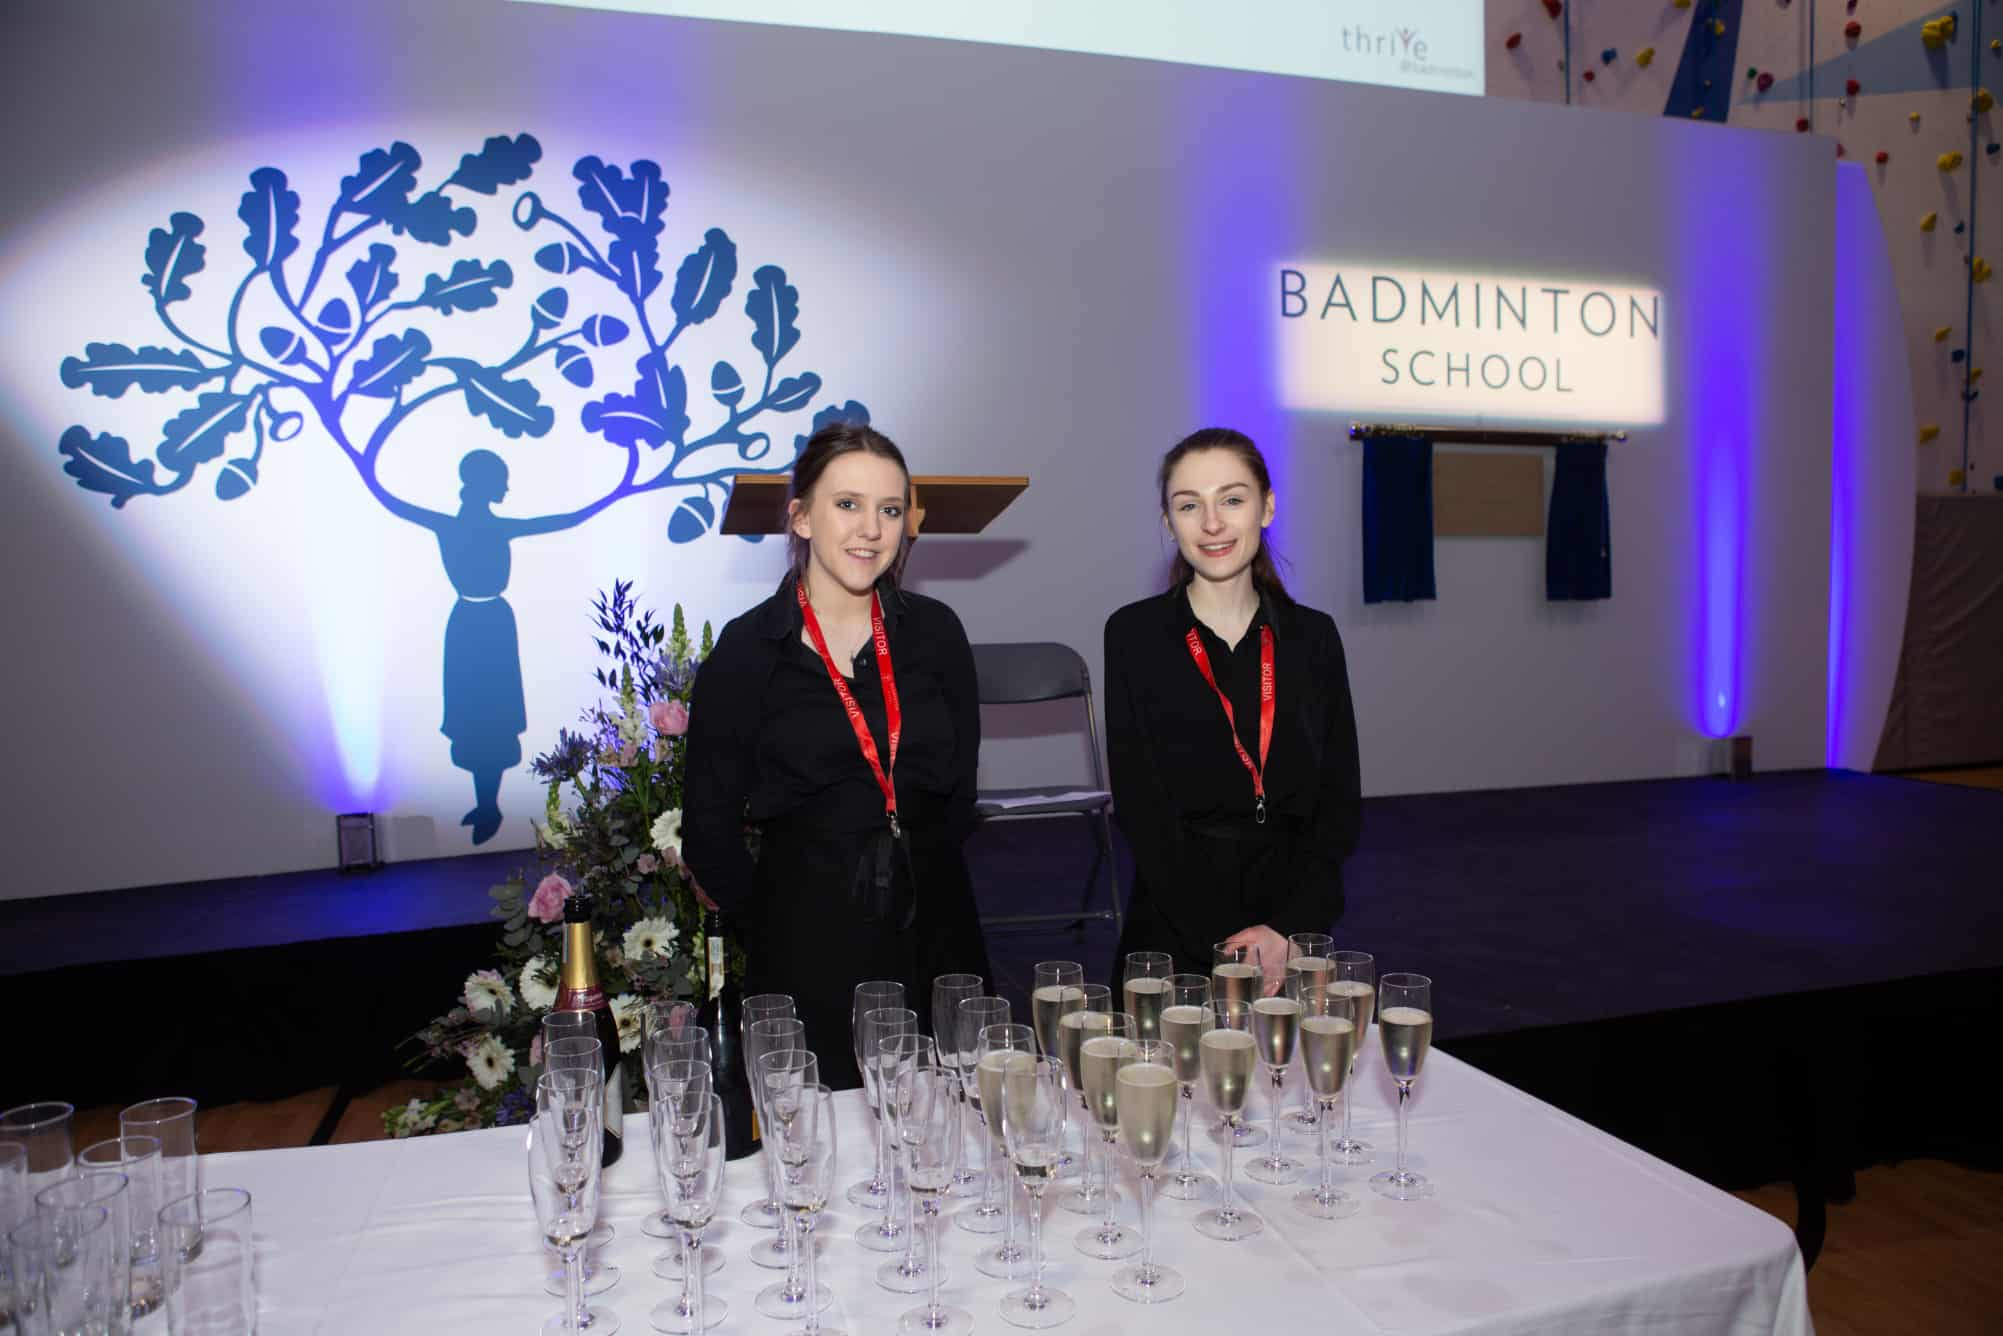 Staff serving drinks at an event within a sportshall